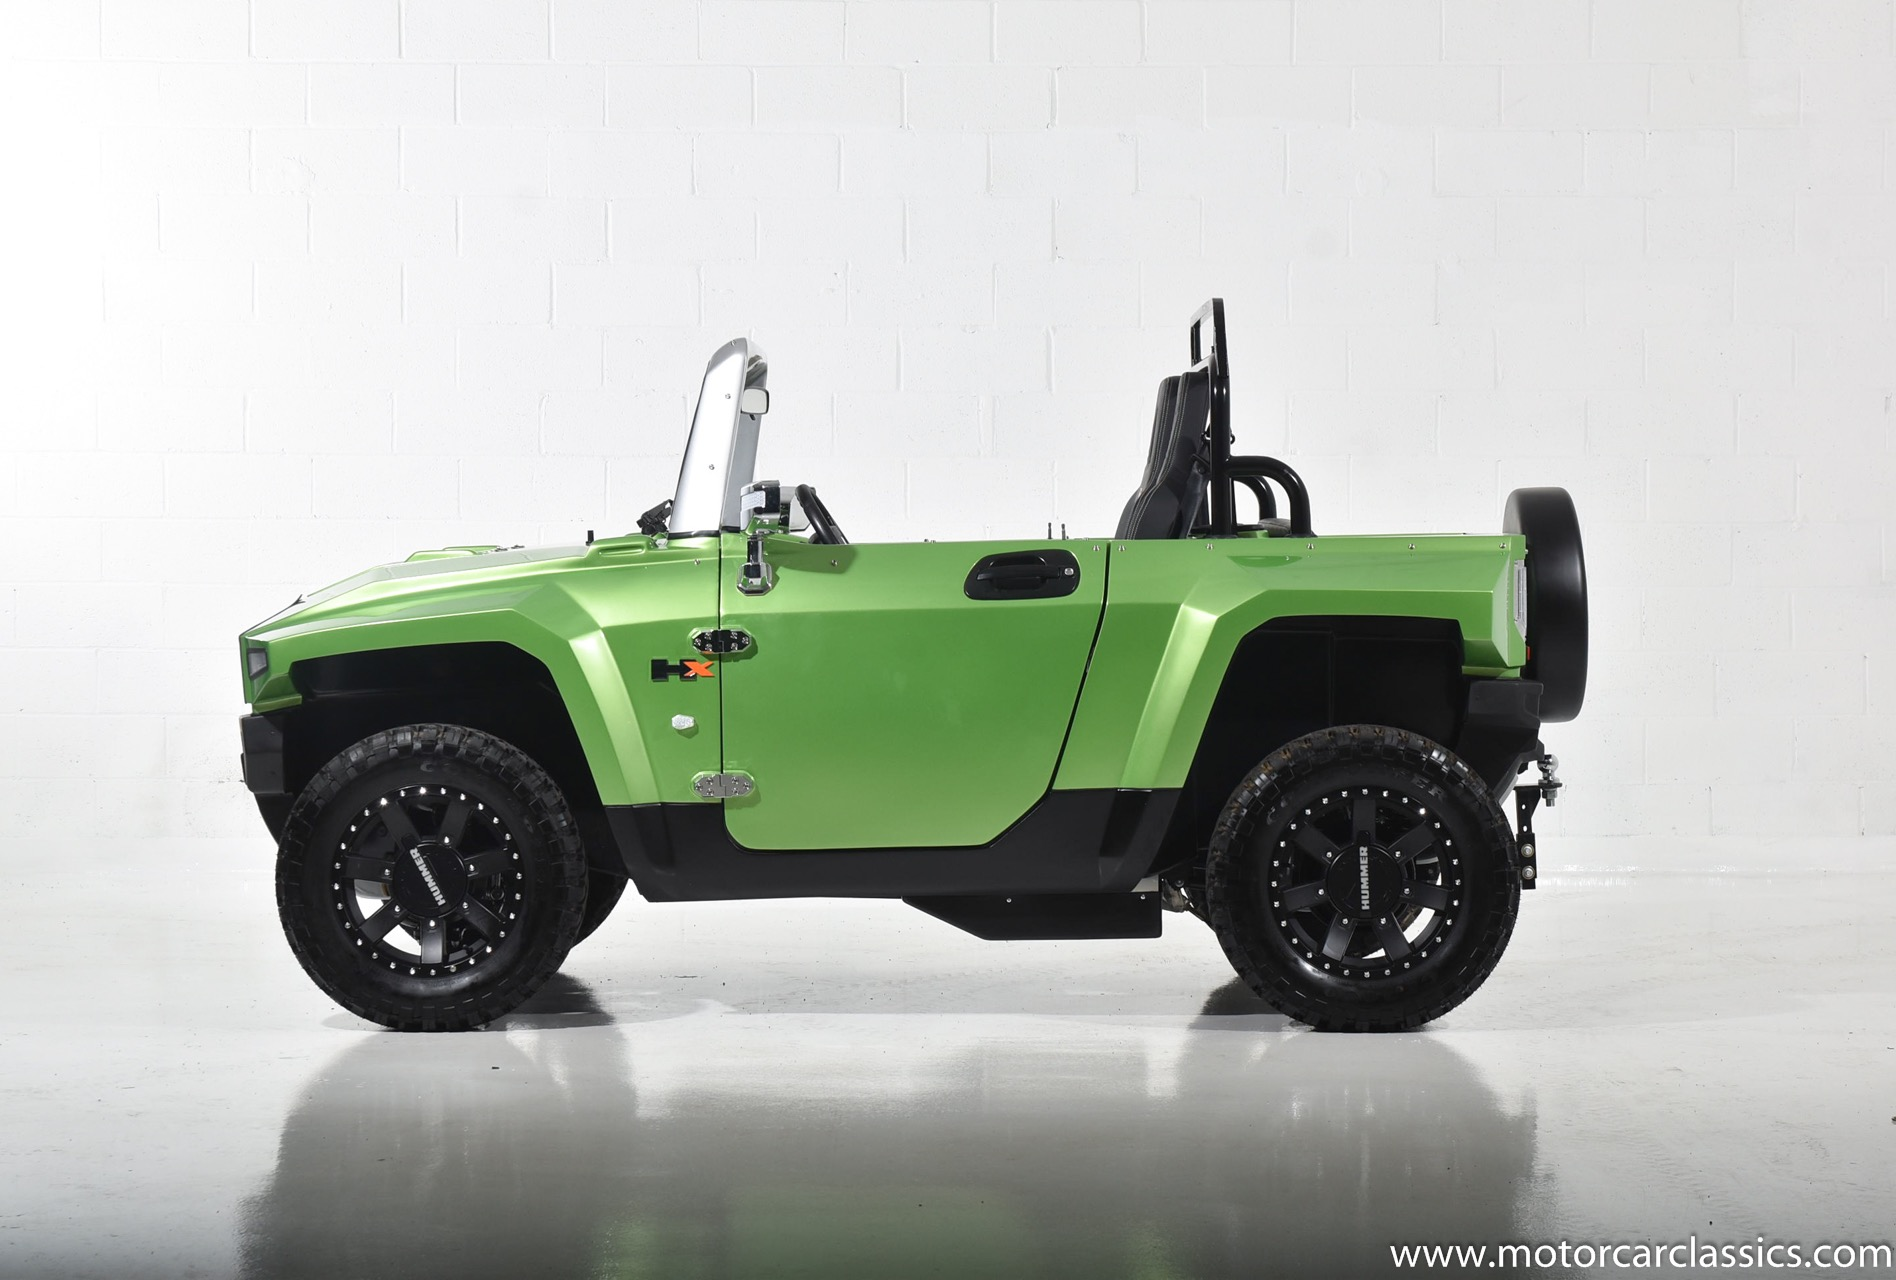 2021 Hummer MEV HX-T Electric